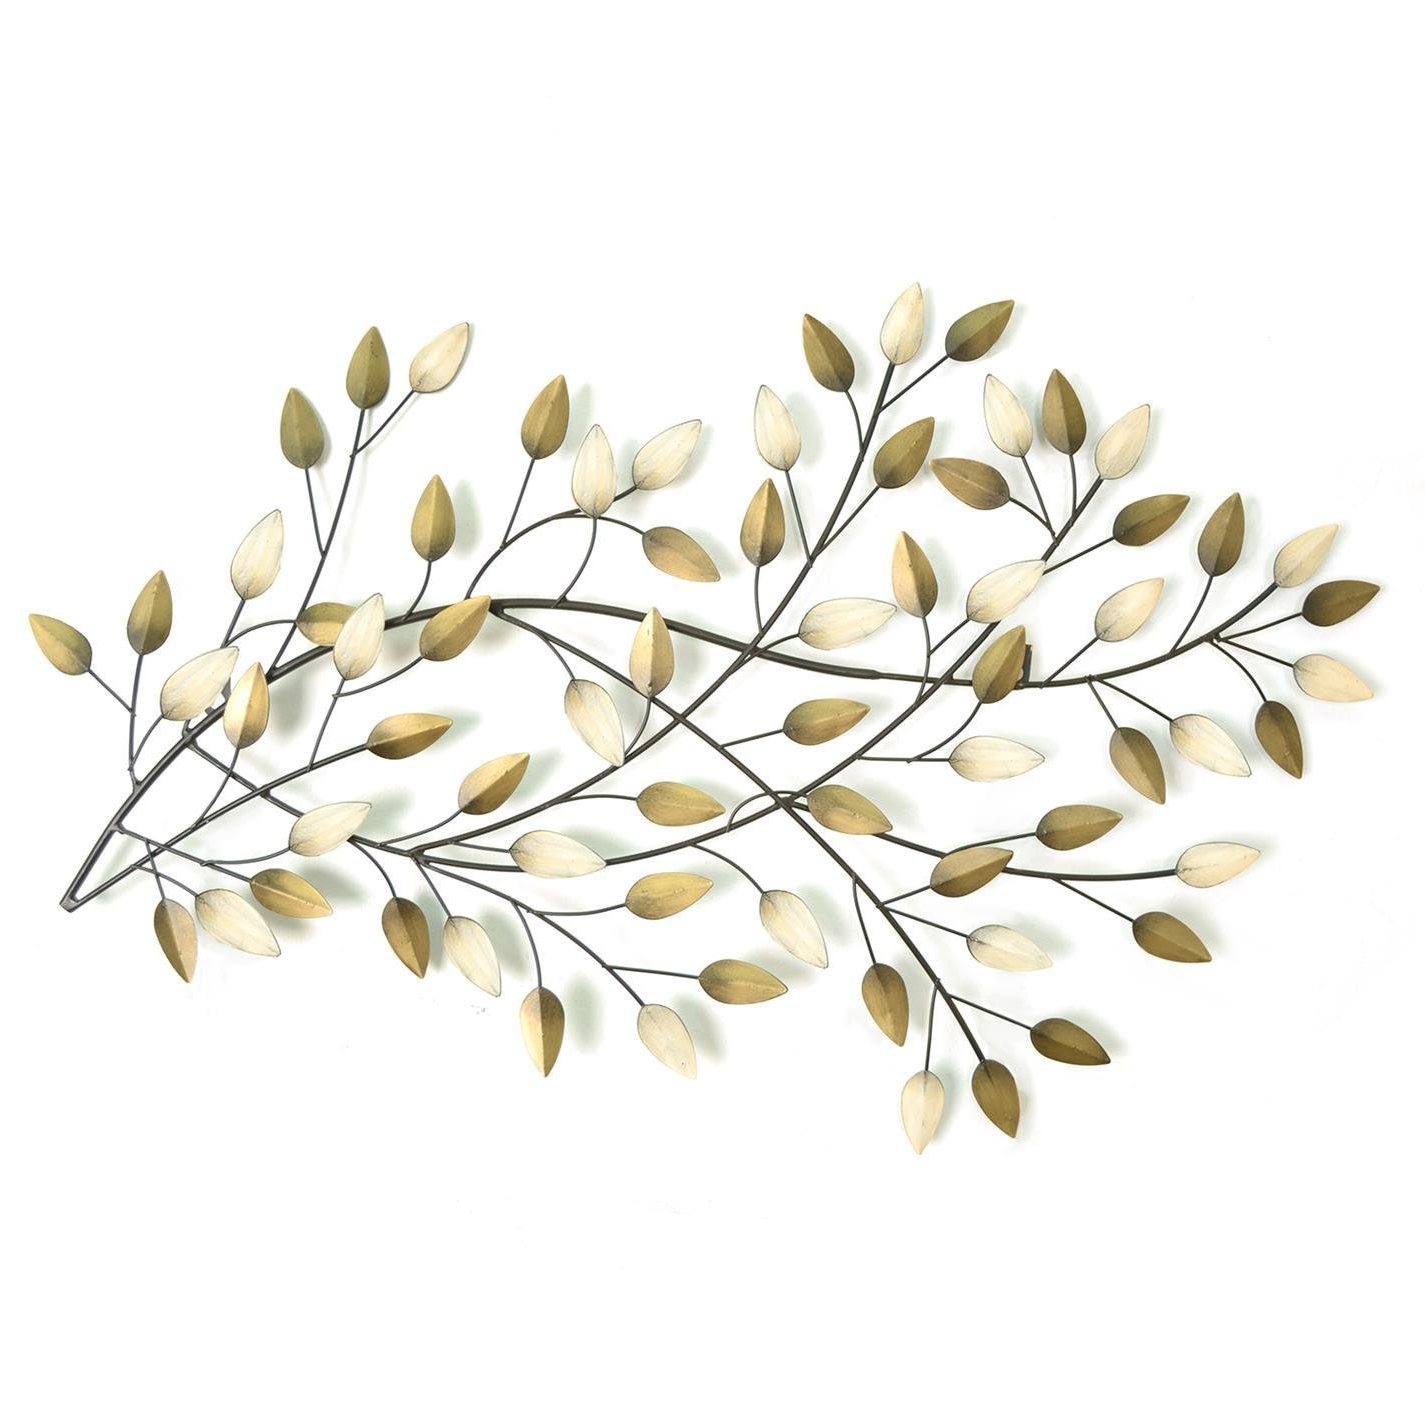 Fashionable Blowing Leaves Wall Décor Regarding Shd0062 Blowing Leaves Wall Decor, Blowing Leaves Wall Decorstratton – Walmart (View 6 of 20)